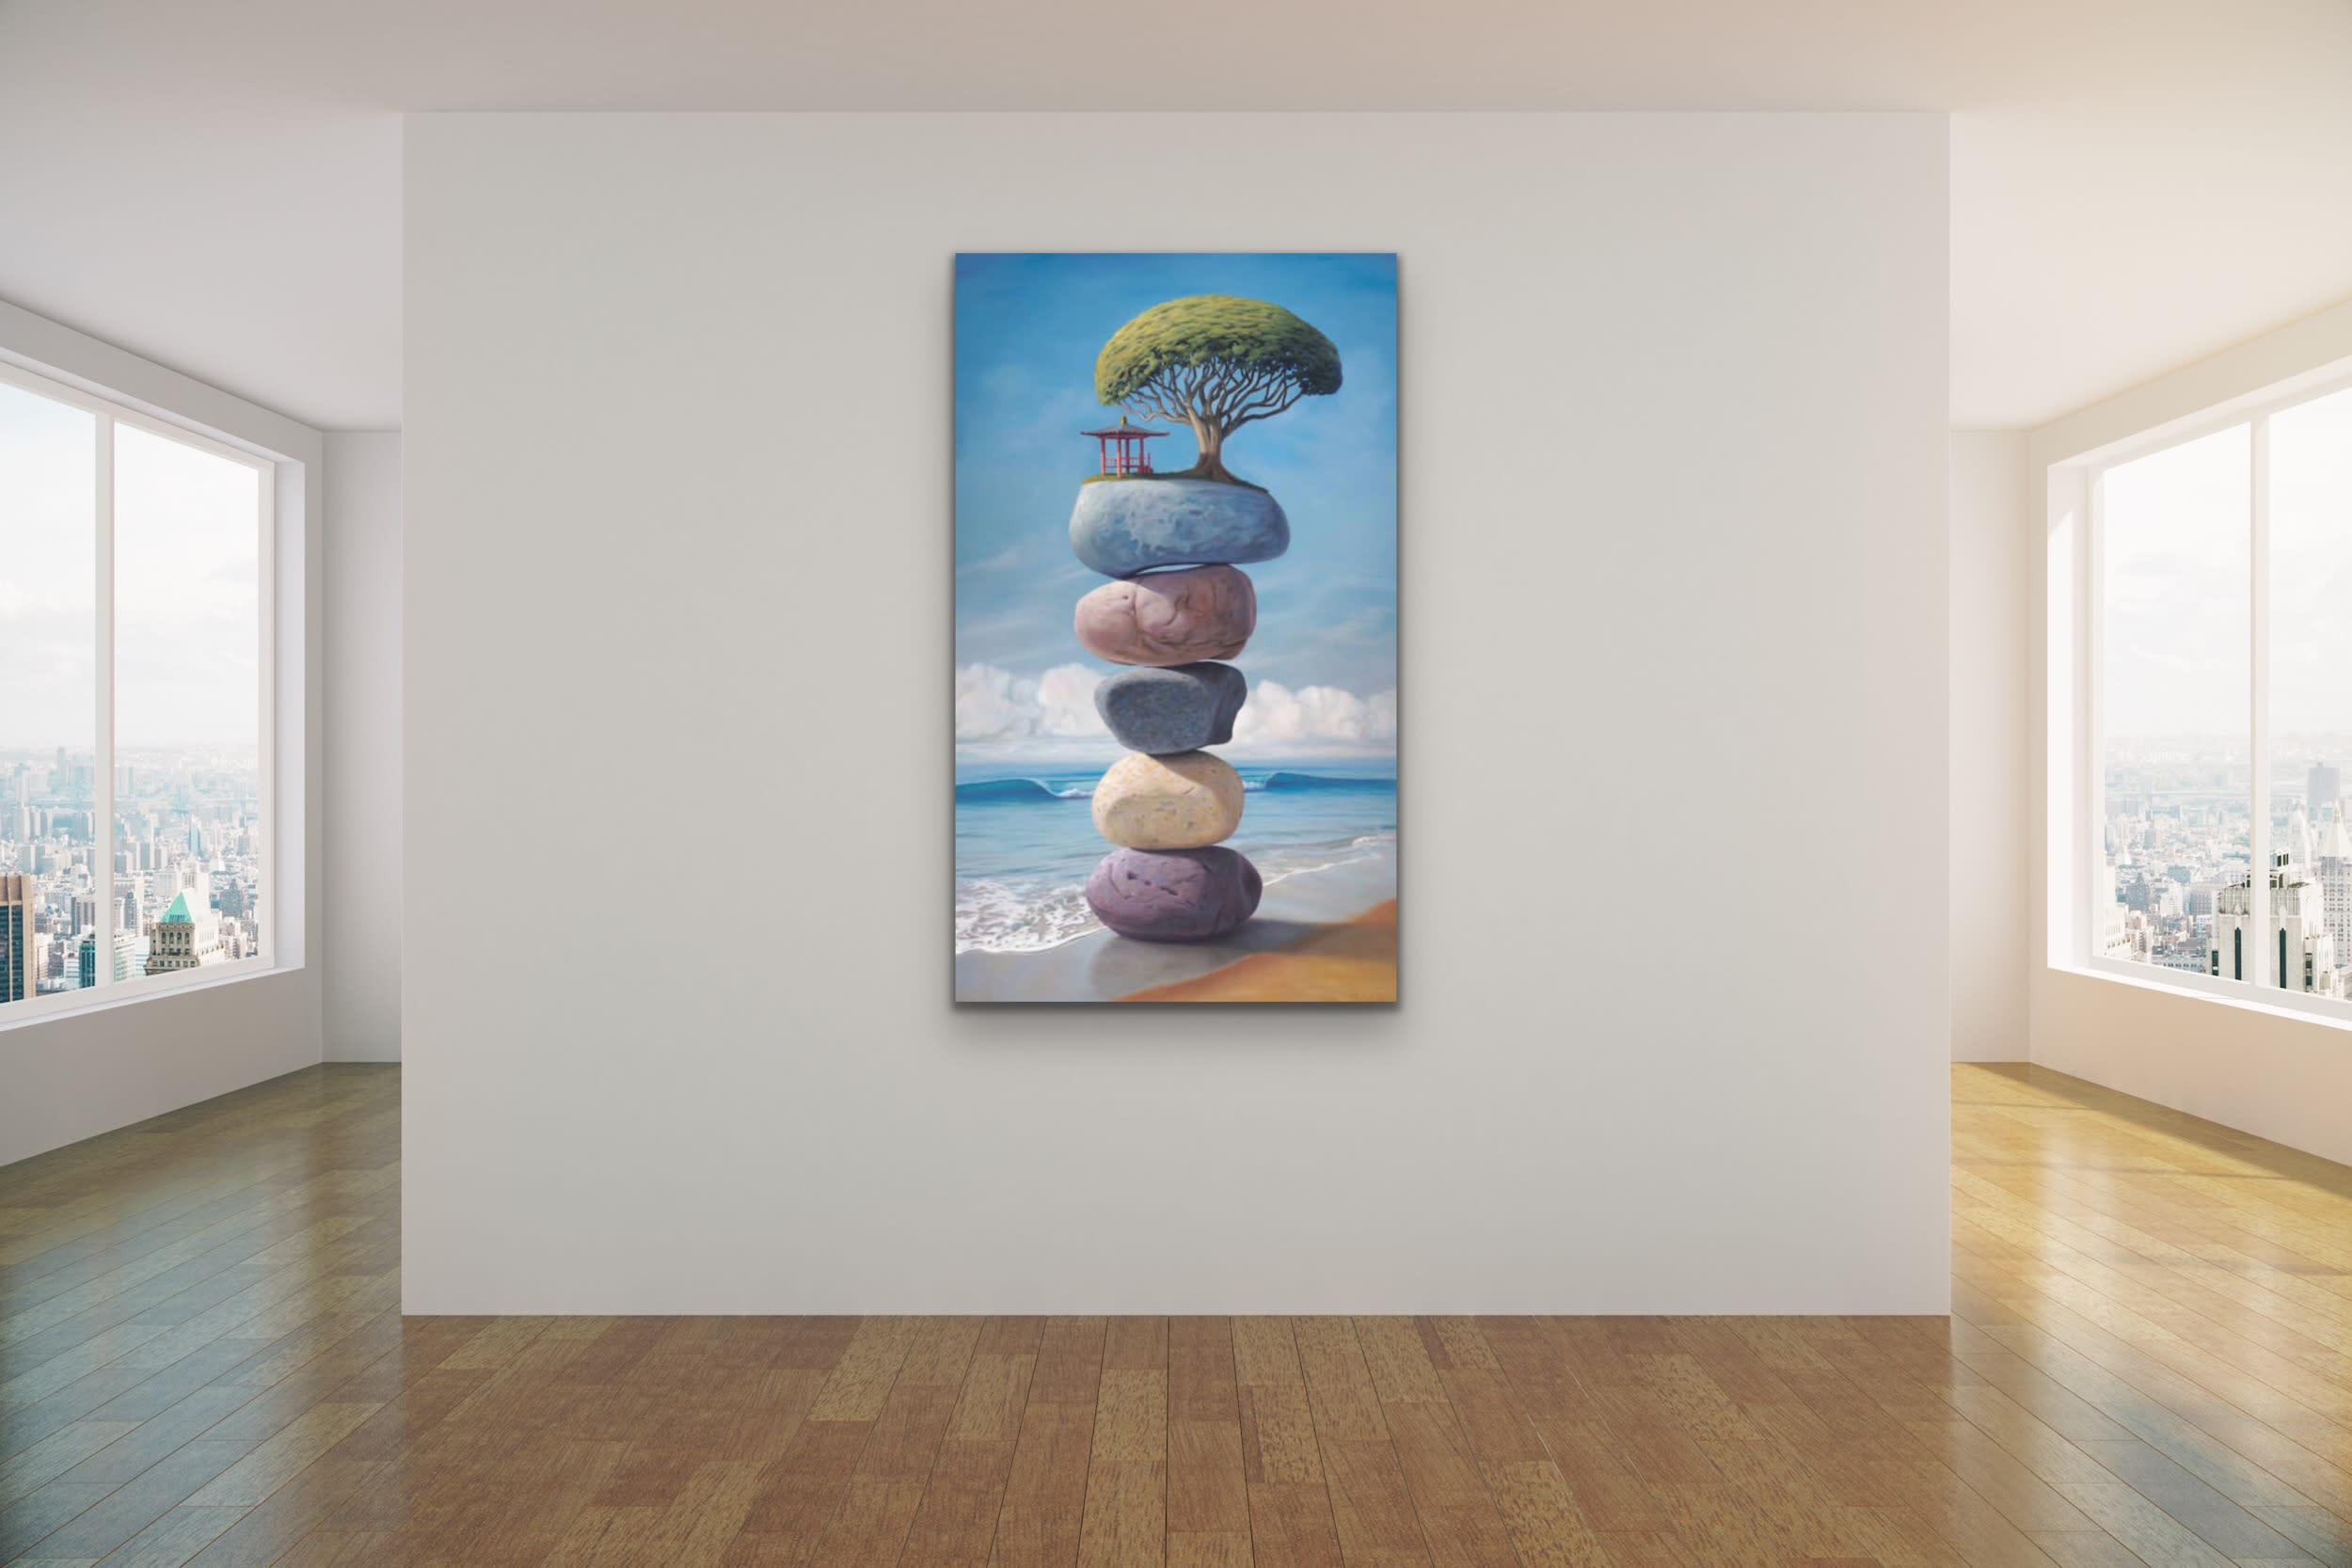 <div class='title'>           Paul Bond Magical Realism Poetry Serene Landscape Animals Nature Surreal Metaphorical Whimsical Fantasy Evo Art Maui Lahaina Front Street Art Gallery 64         </div>